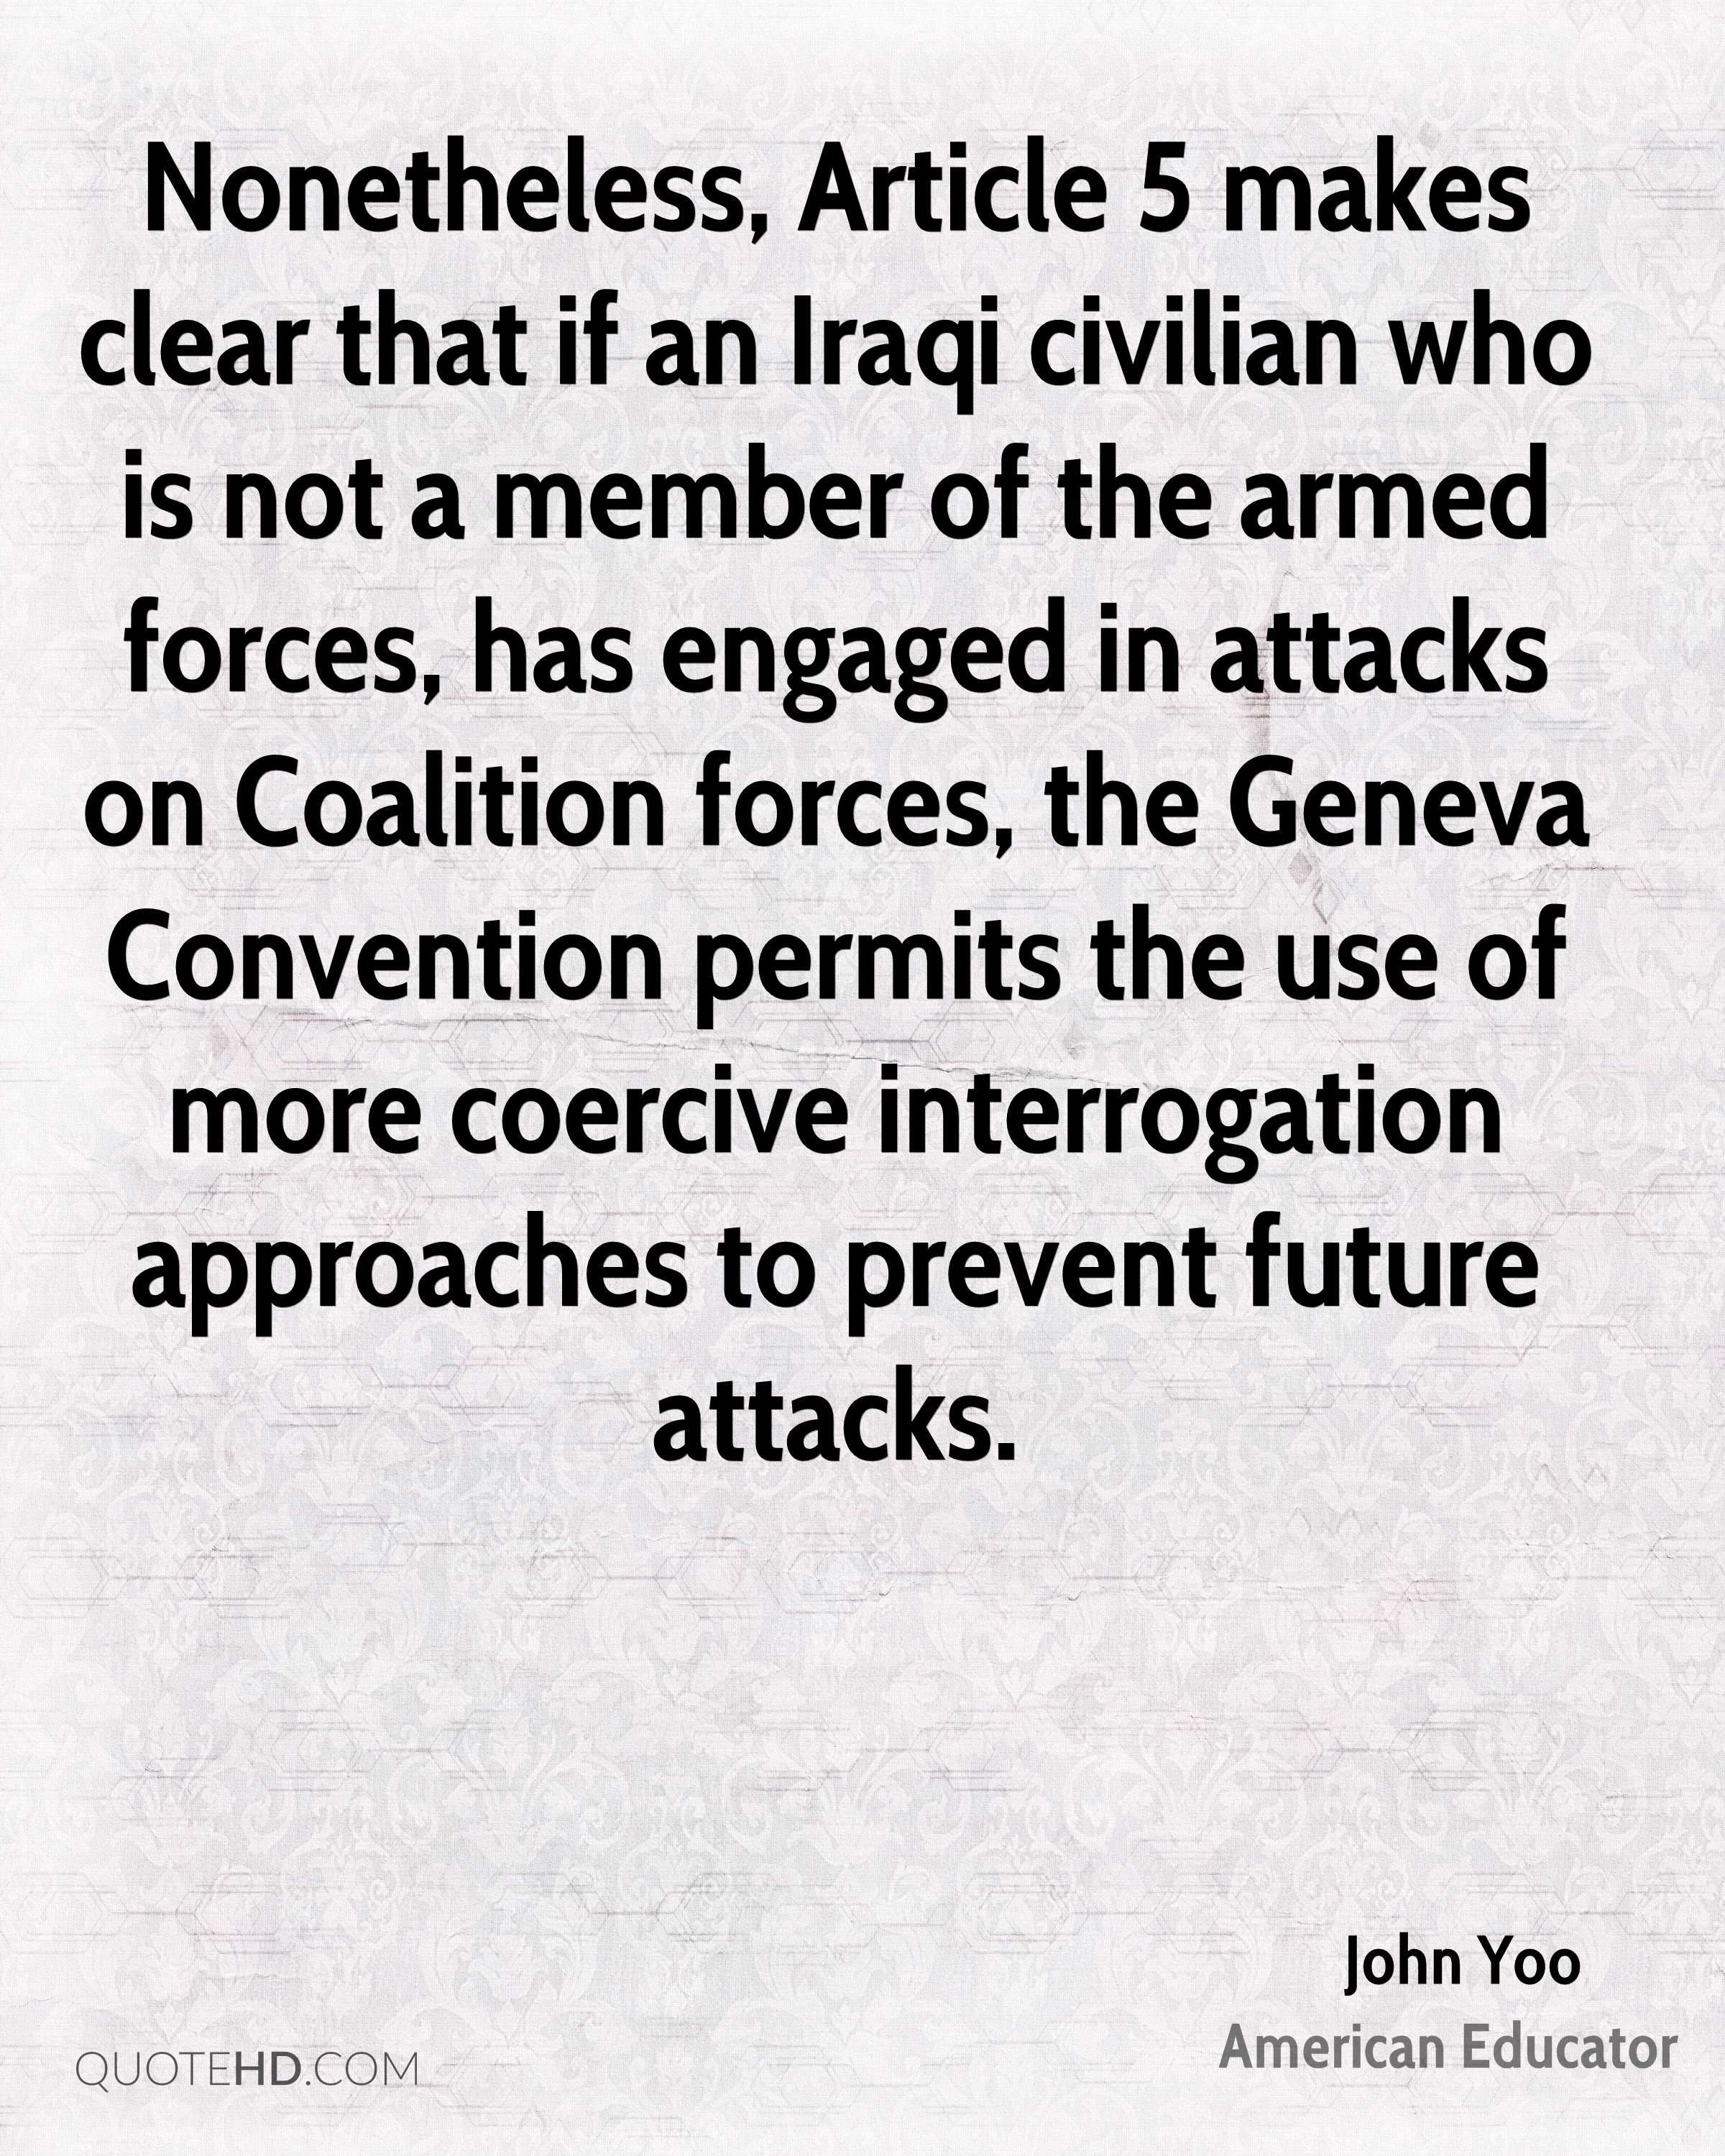 Nonetheless, Article 5 makes clear that if an Iraqi civilian who is not a member of the armed forces, has engaged in attacks on Coalition forces, the Geneva Convention permits the use of more coercive interrogation approaches to prevent future attacks.